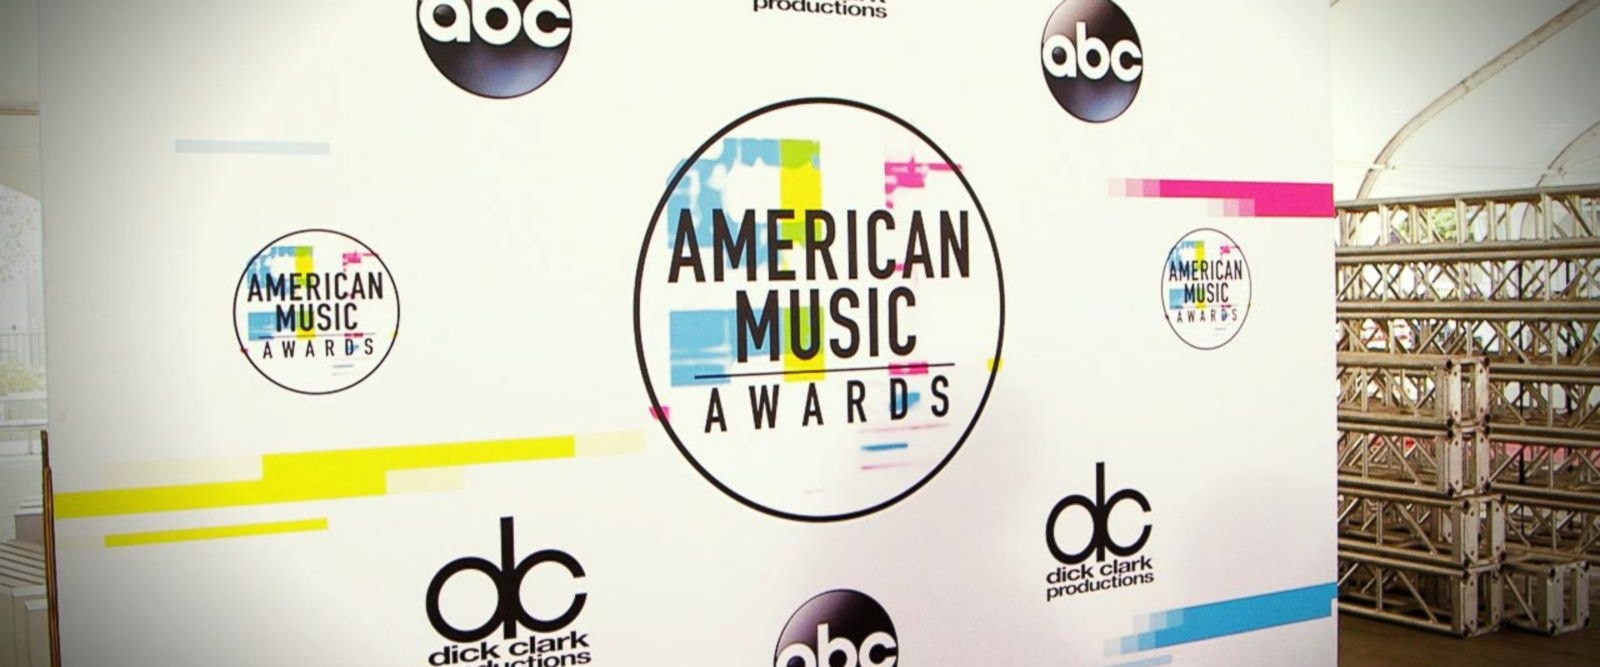 VIDEO: Behind the scenes of the 2017 American Music Awards